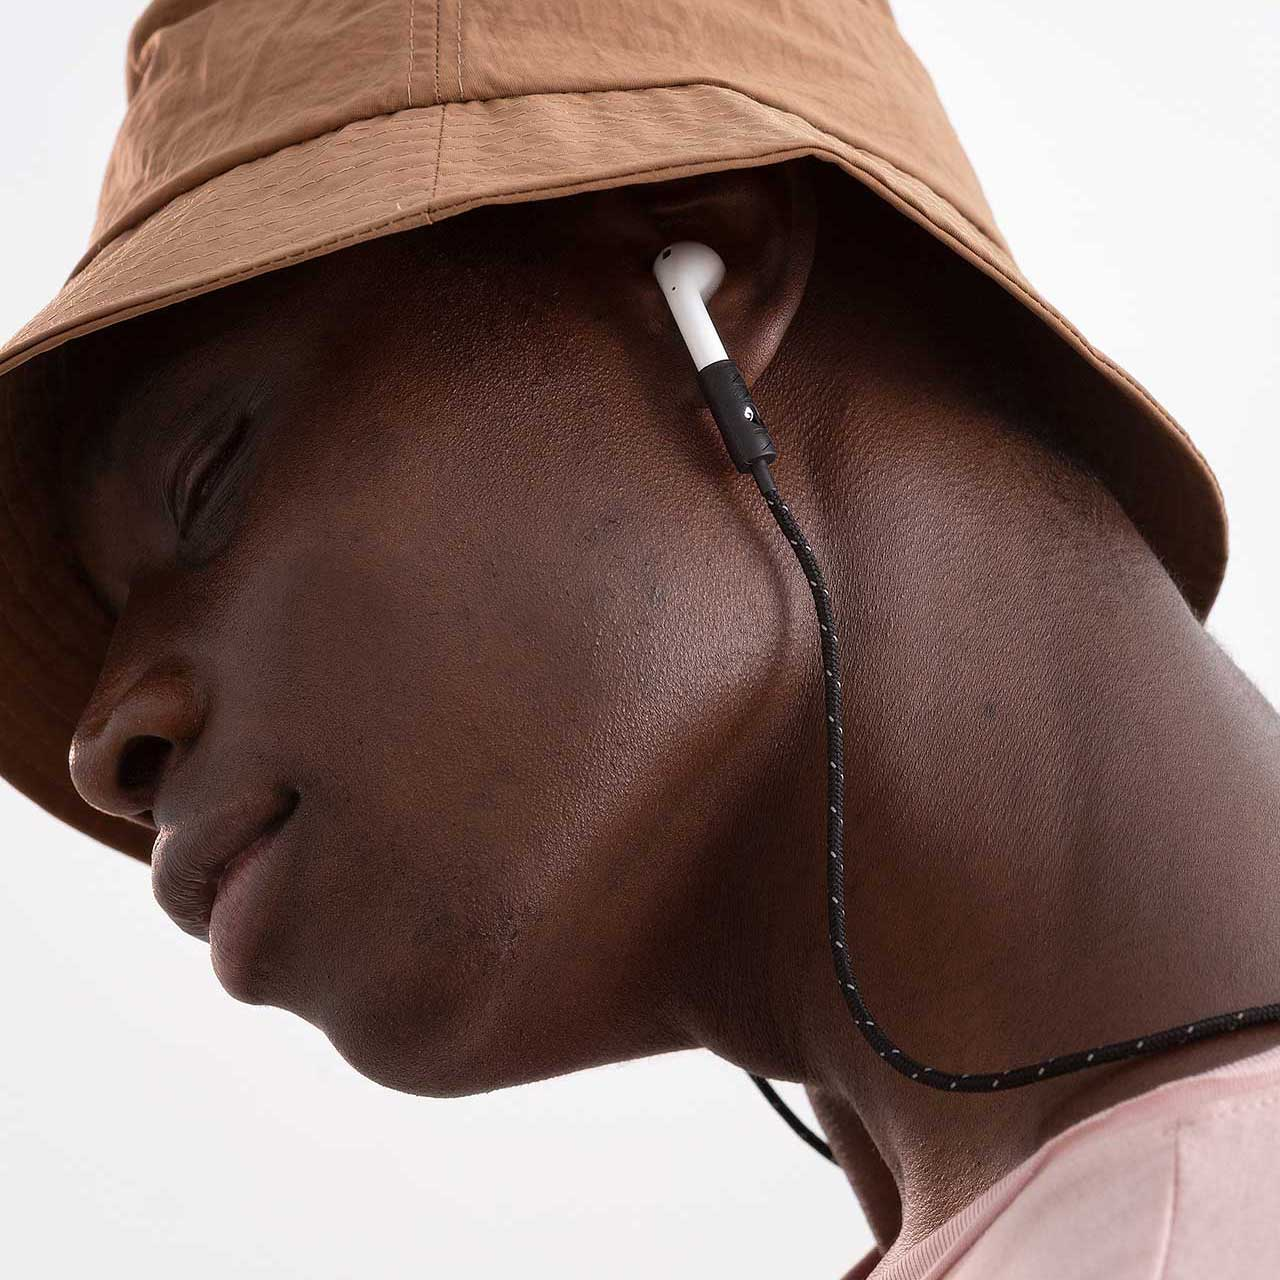 Model wearing AirPods with KNOK AirPods Strap in Black Reflect